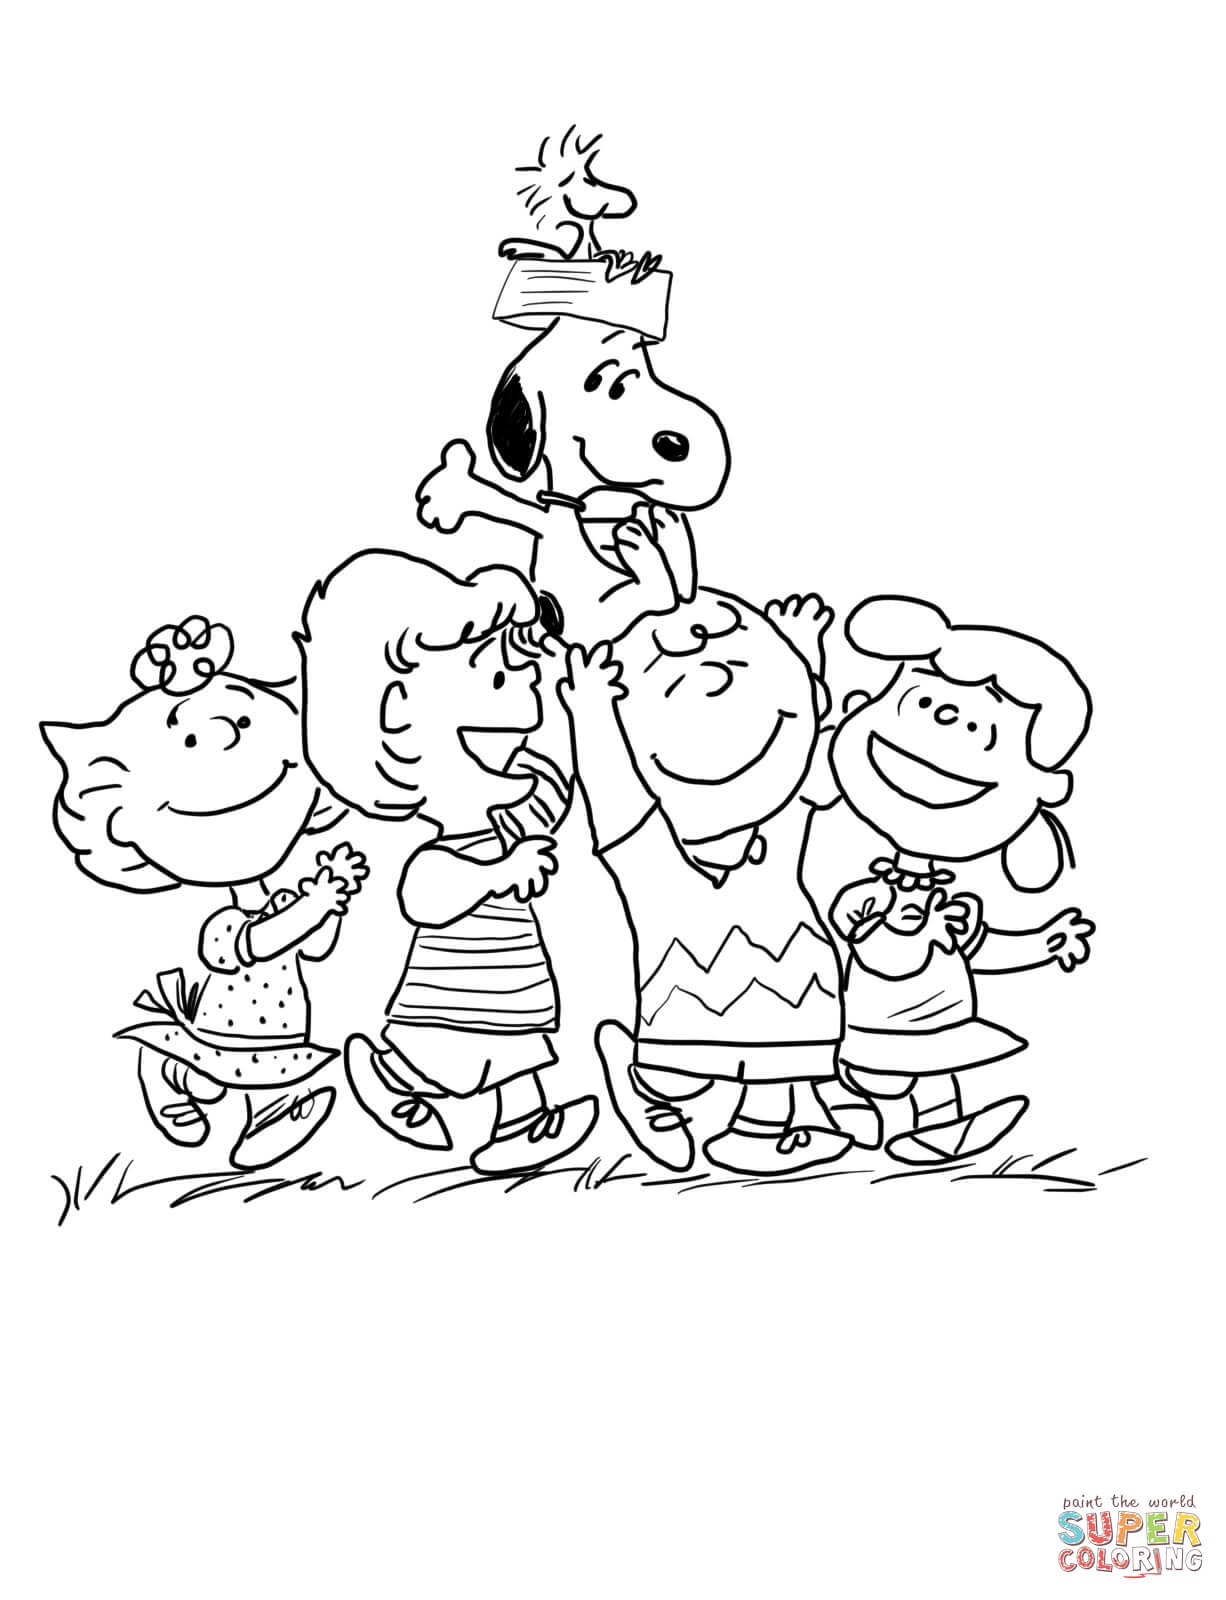 peanuts coloring pages peanuts coloring pages free printable coloring pages for coloring peanuts pages